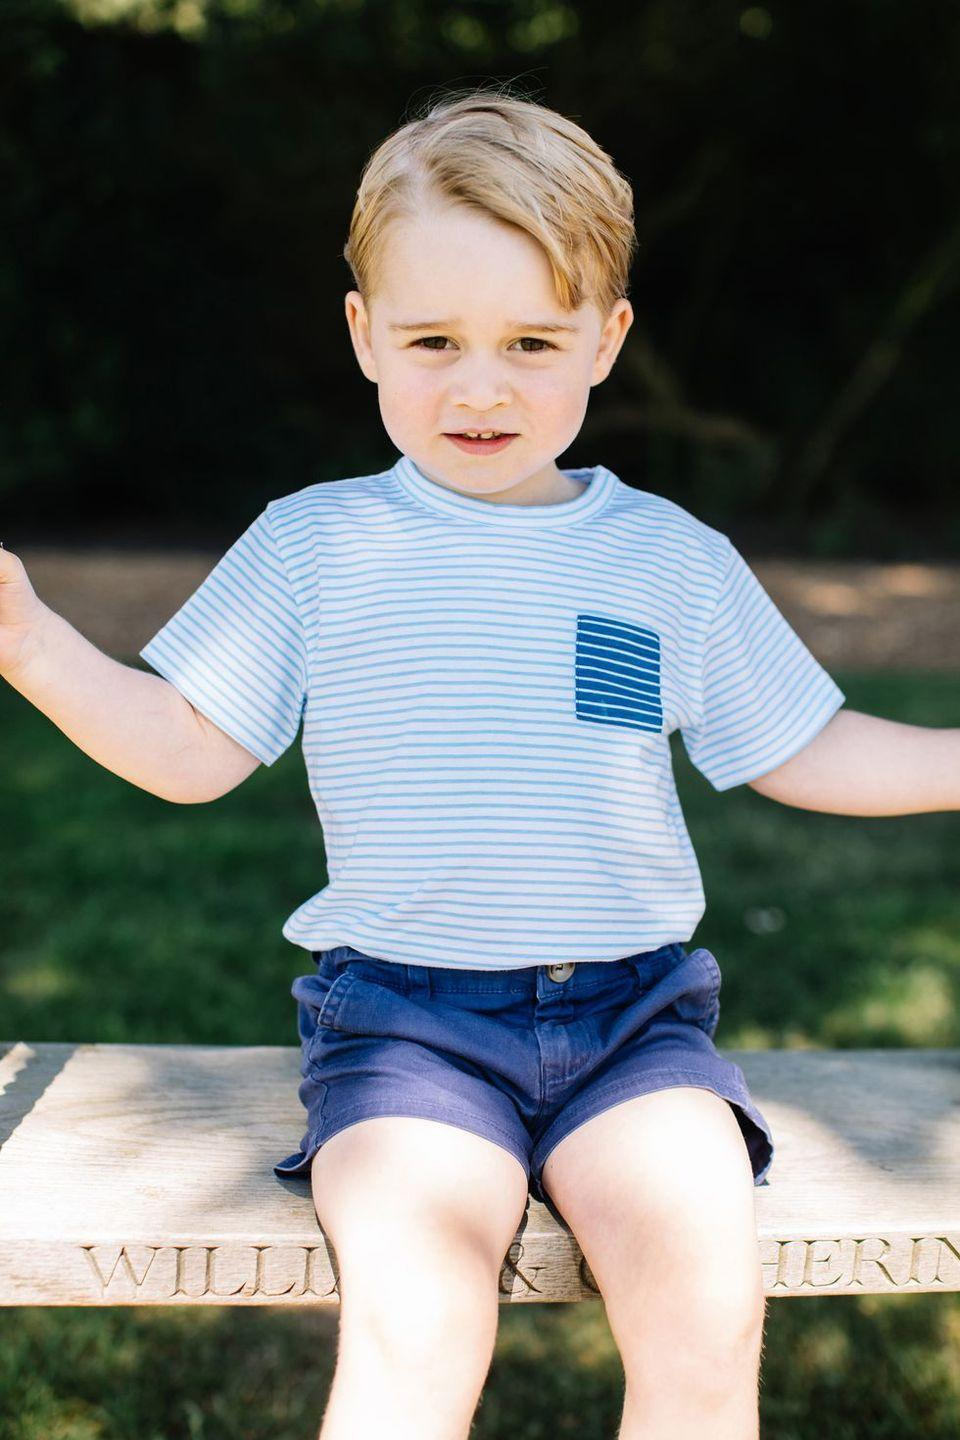 """<p>Prince George rocks stripes and shorts at this sweet summer shoot at his family's Norfolk home in July 2016. The swing he sits on is engraved with his parents' names, """"William & Catherine.""""</p>"""